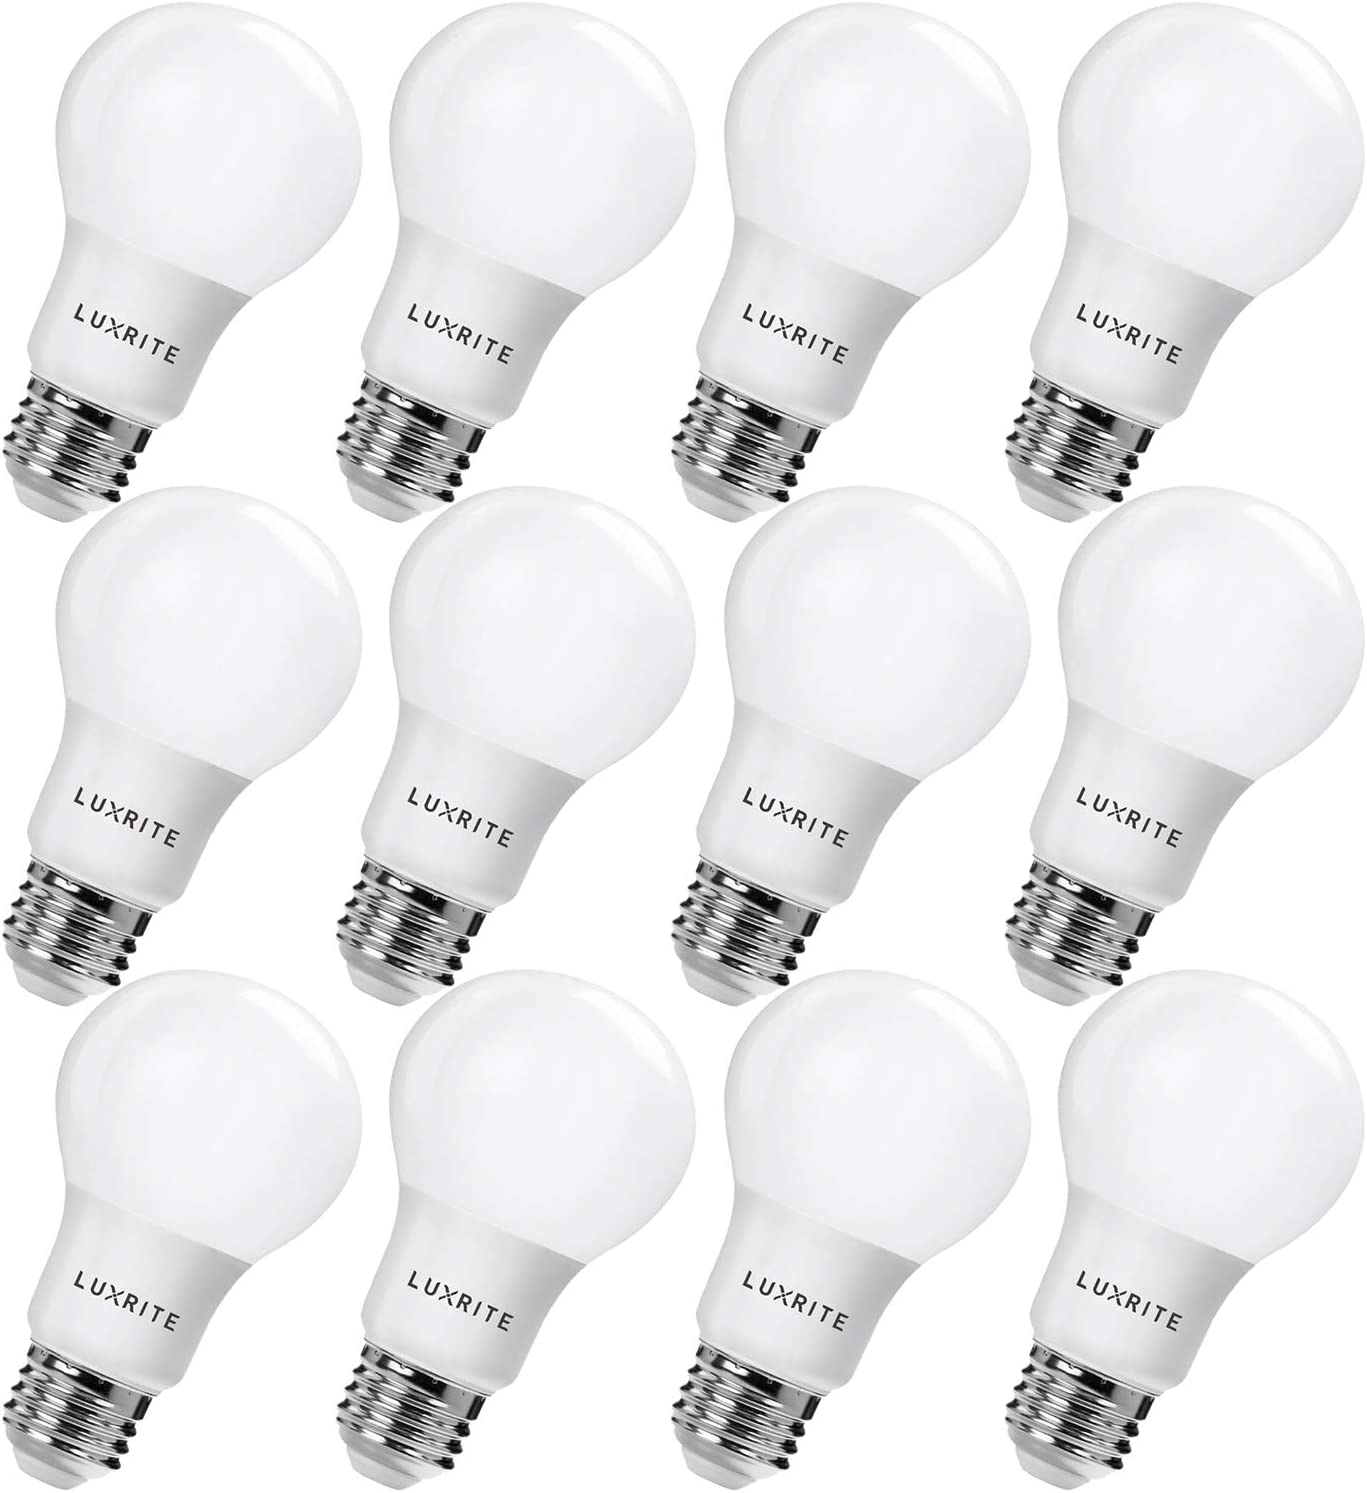 Luxrite LR21393 12-Pack Regular discount 9W LED Bulb Memphis Mall Light A19 Equivalent 60W